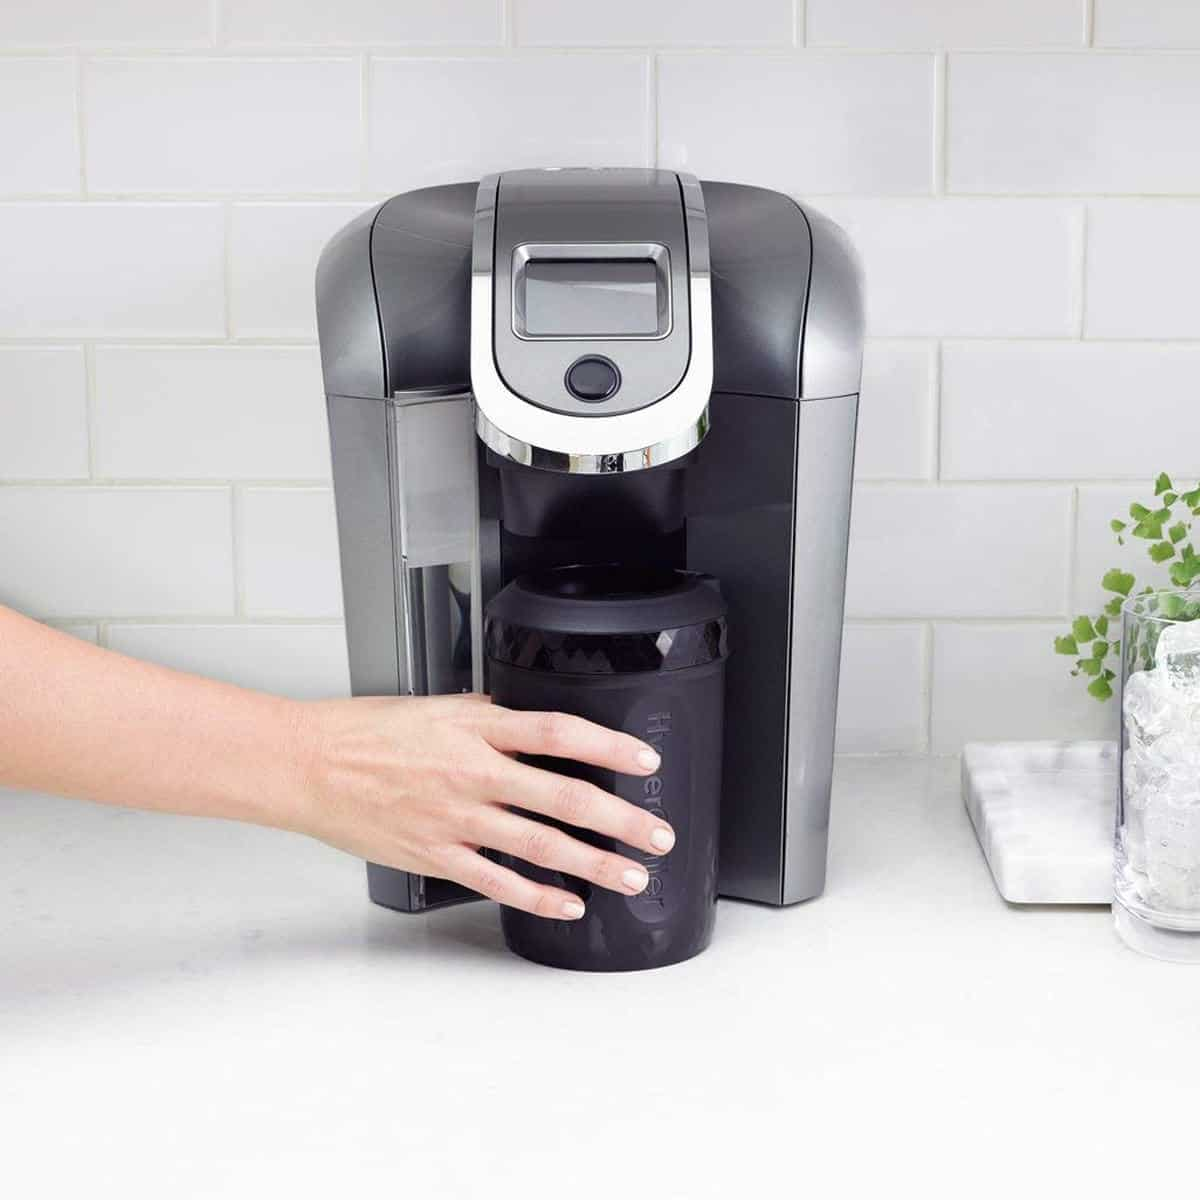 HyperChiller Iced Coffee Maker | Best Amazon Products You Never Knew You Needed